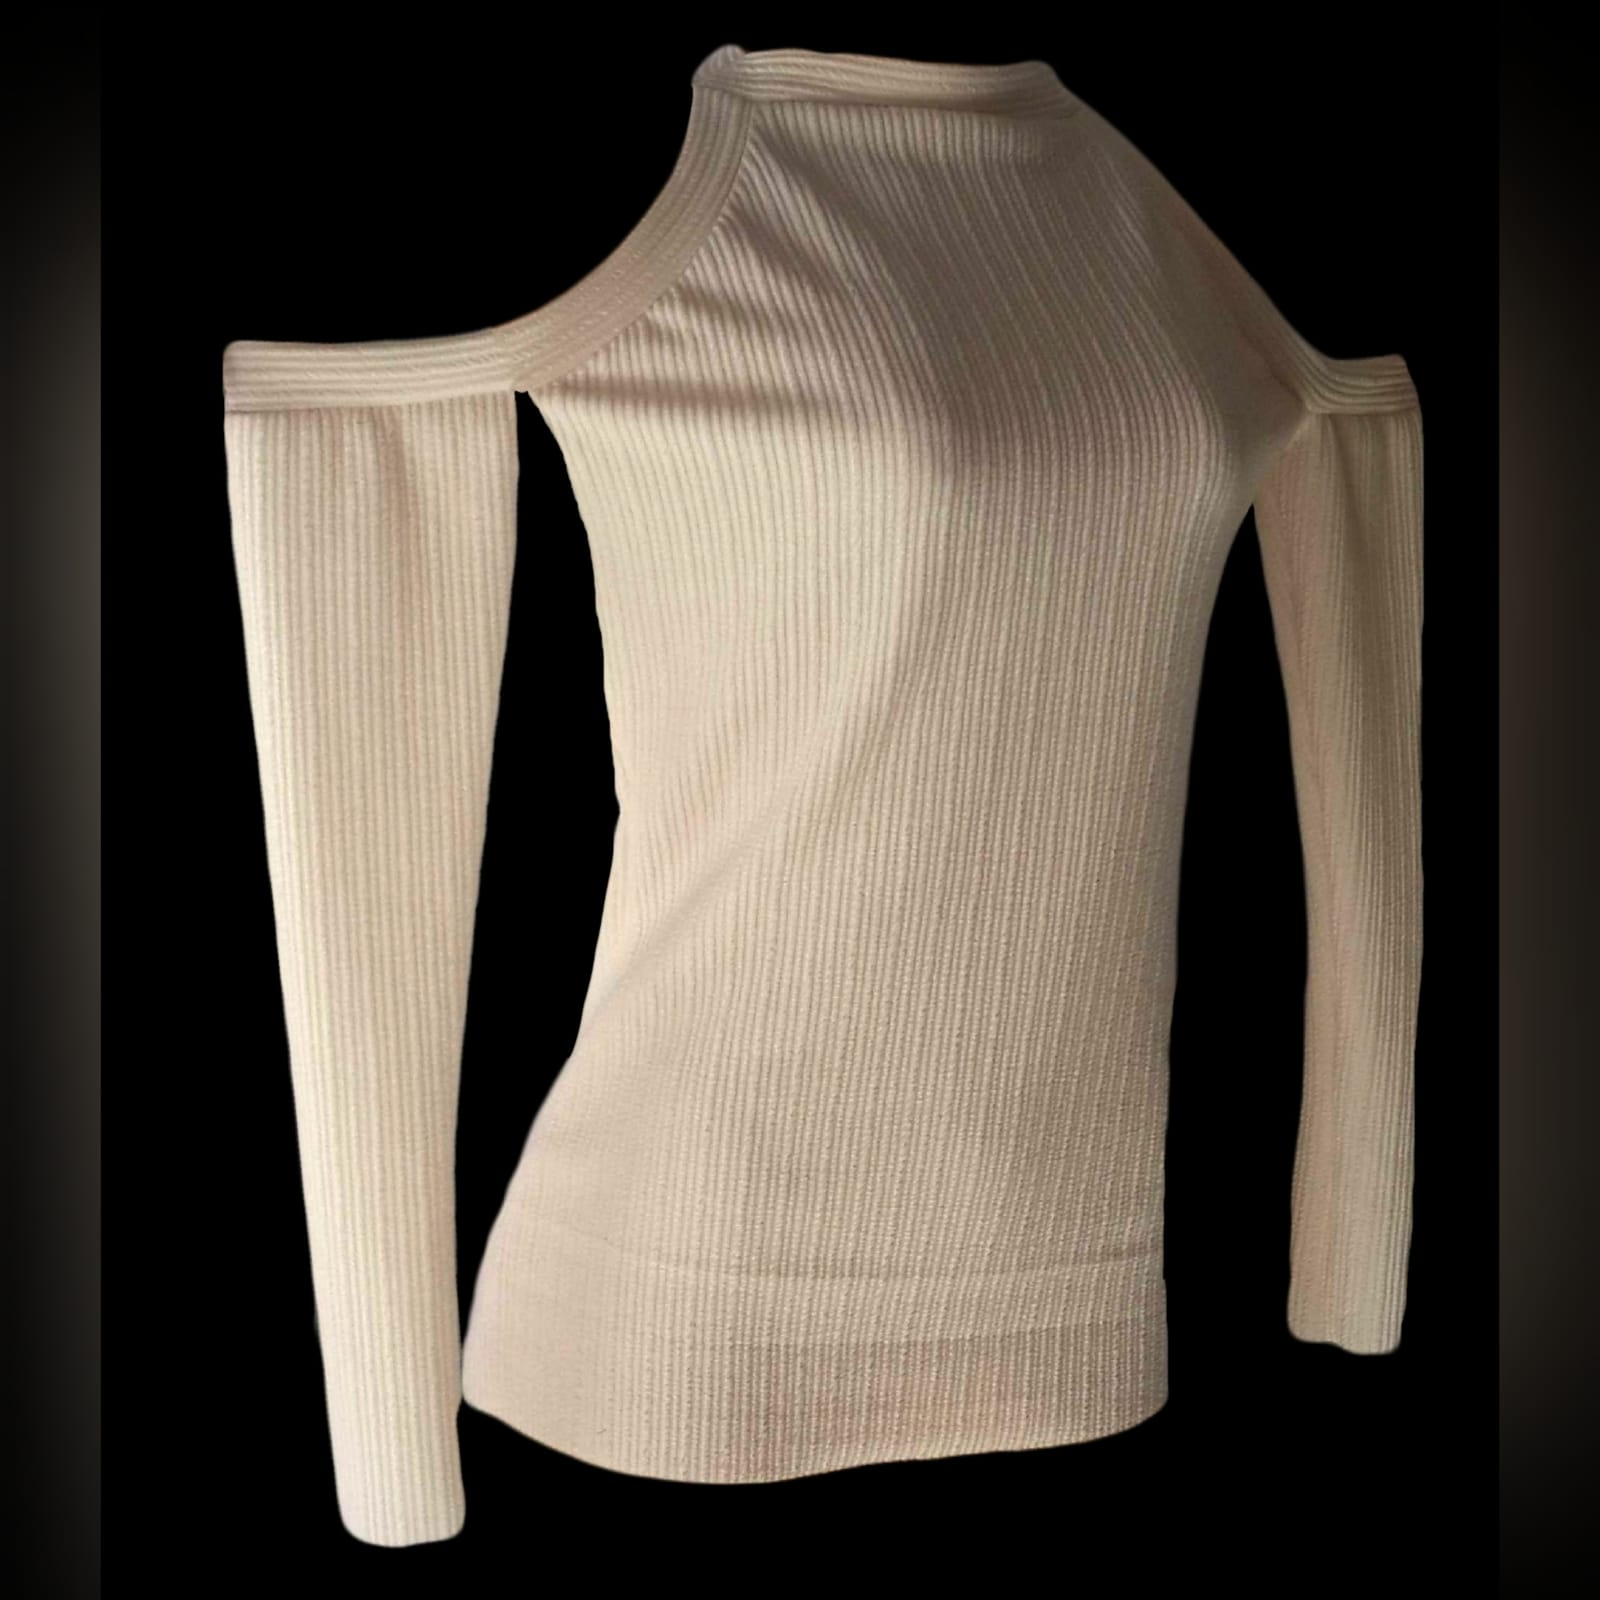 Beige winter knitted smart casual top 1 beige winter knitted smart casual top, with off shoulder long sleeves